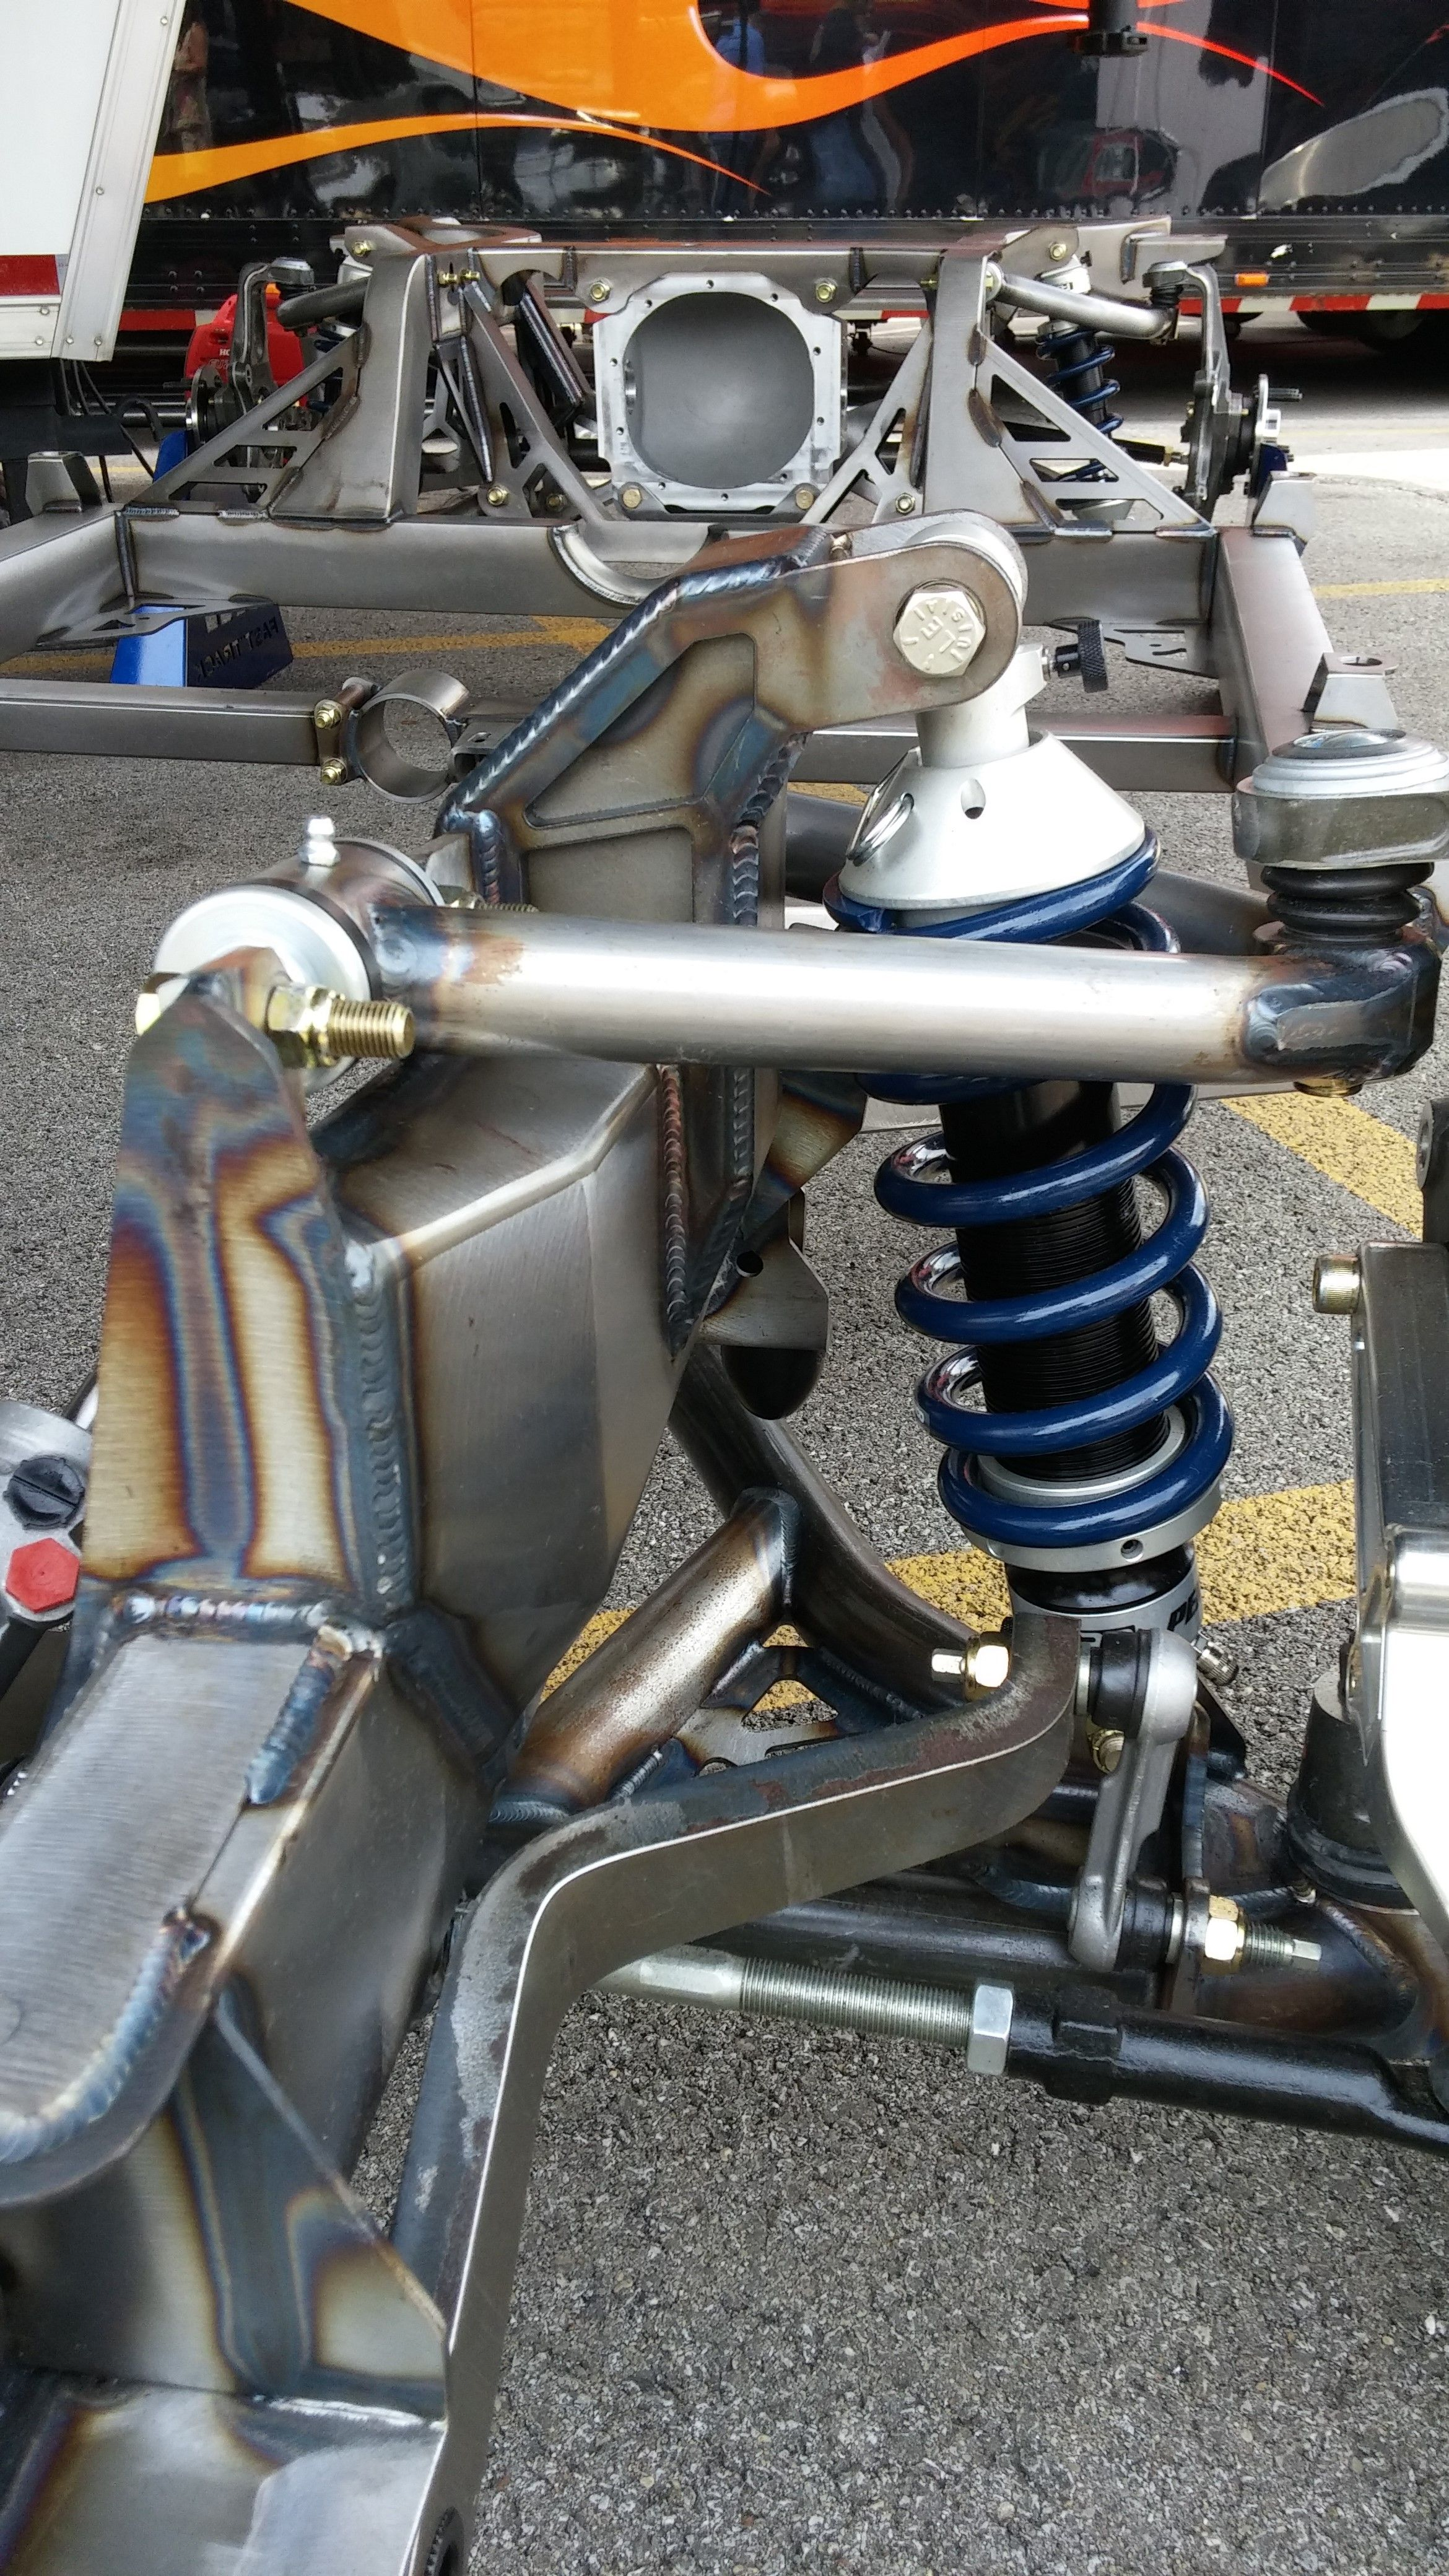 hight resolution of tog welded fabricated front coil over suspension on a street rod frame 2015 goodguys rod show in columbus ohio